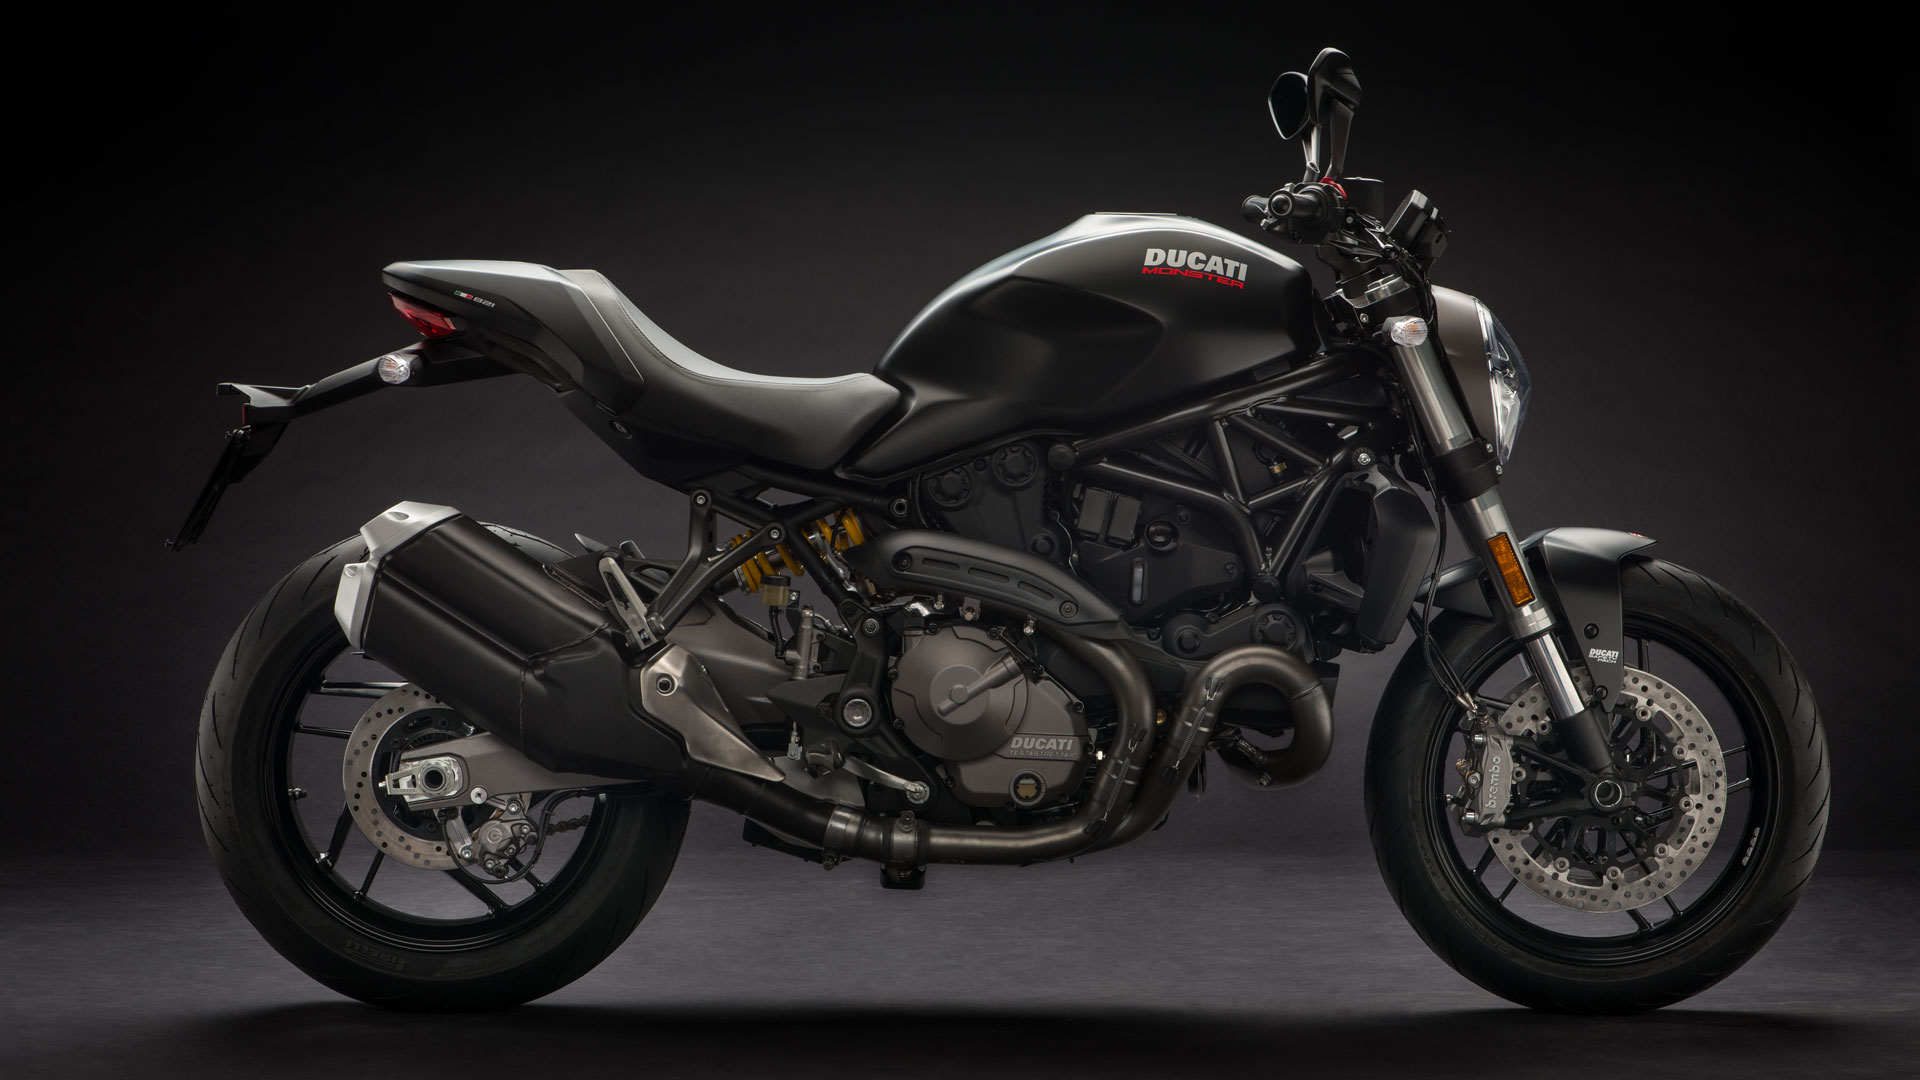 Ducati Monster 821 >> Ducati Monster 821 - naked motorcycles by Ducati